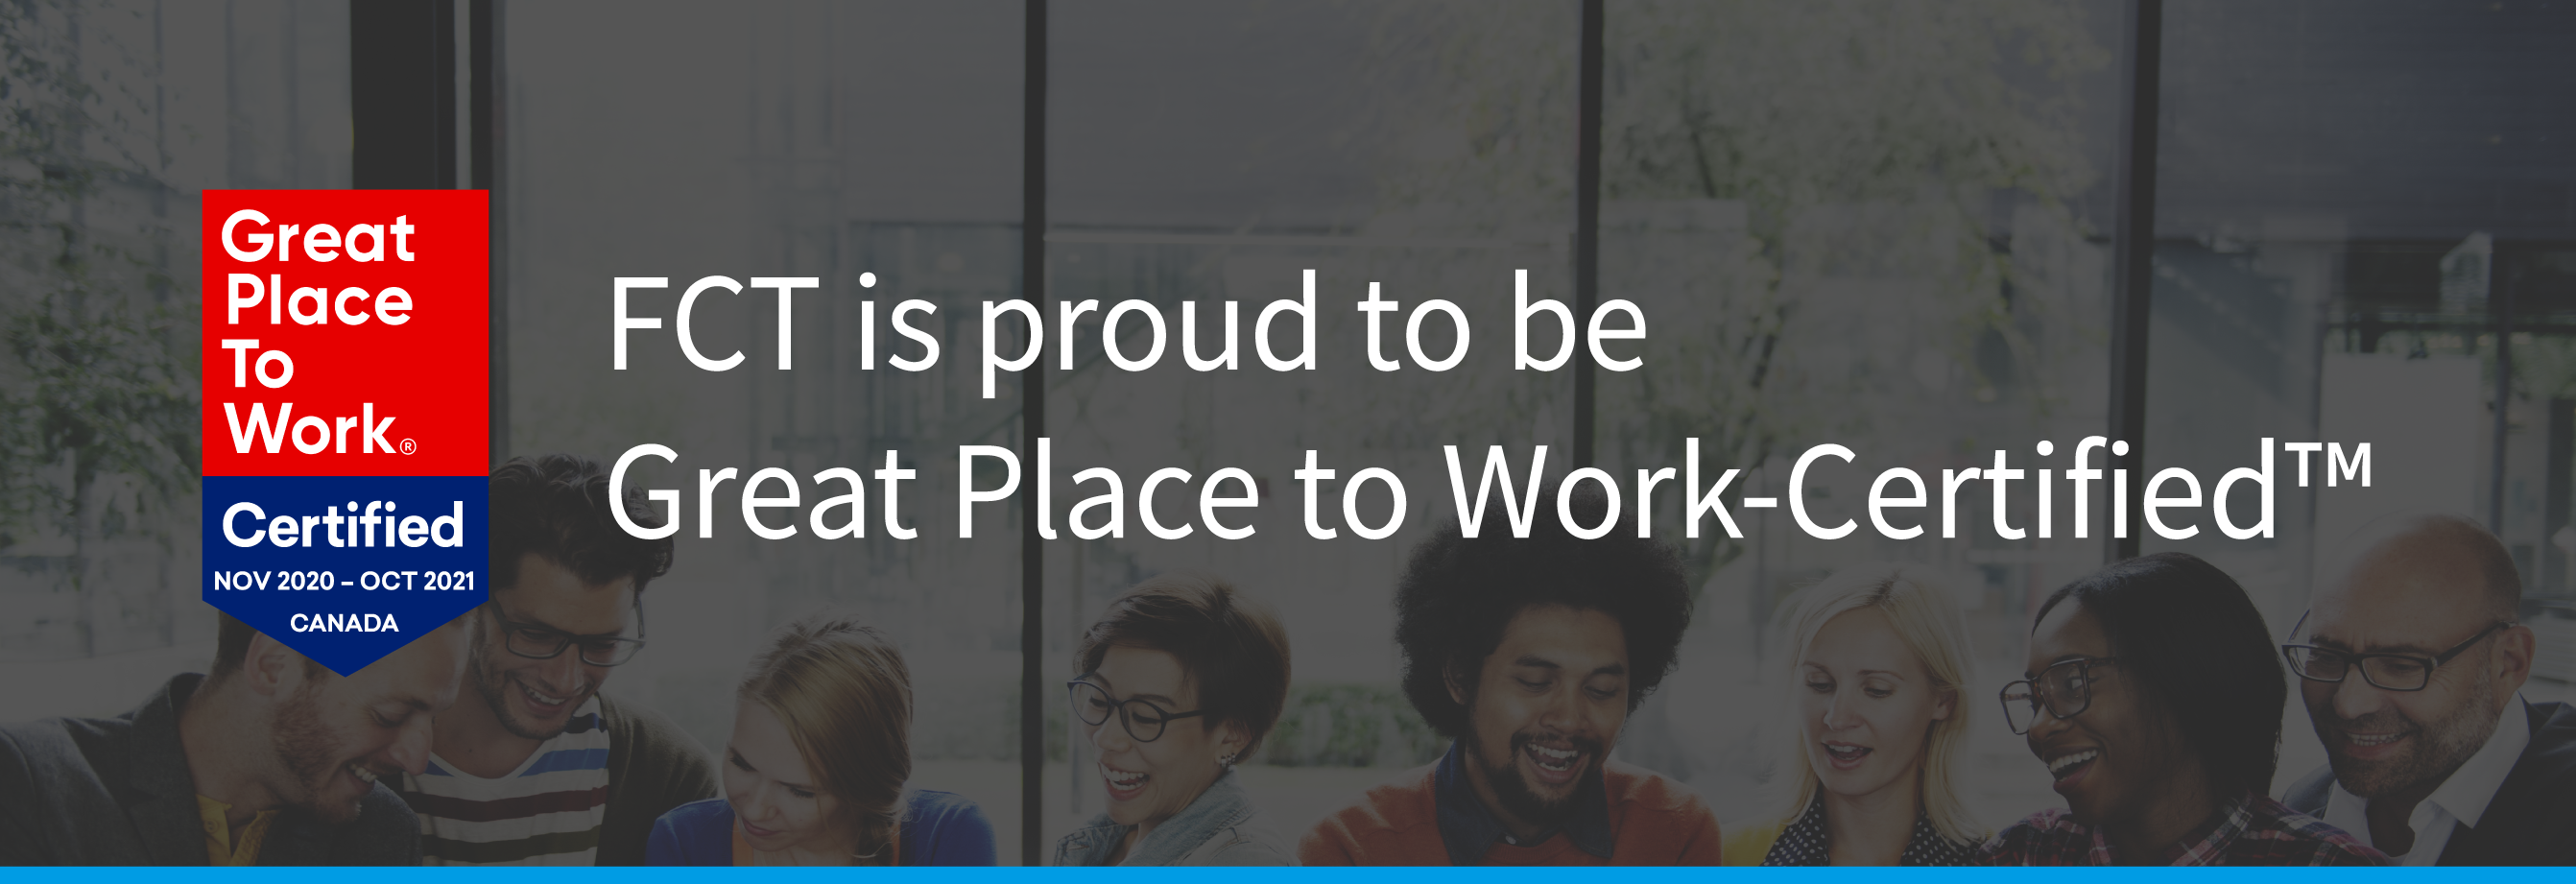 FCT is proud to be Great Place to Work-Certified TM. Great Place to Work Certified, November 2020 - October 2021 CANADA.